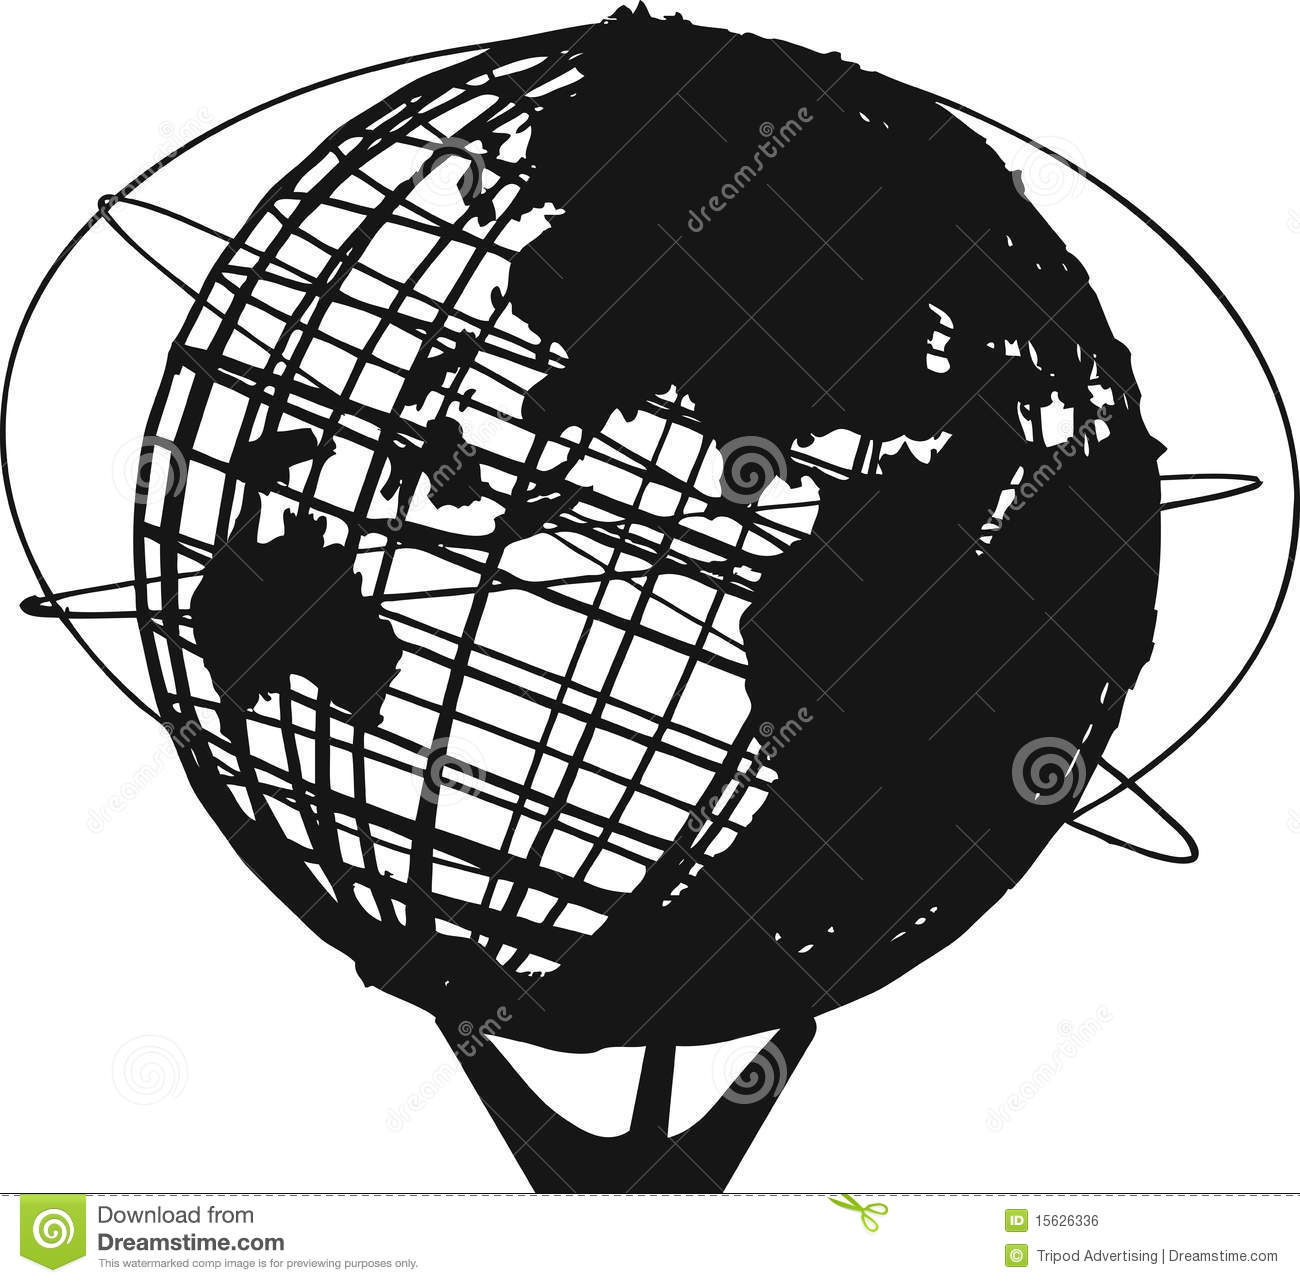 Unisphere Royalty Free Stock Image.